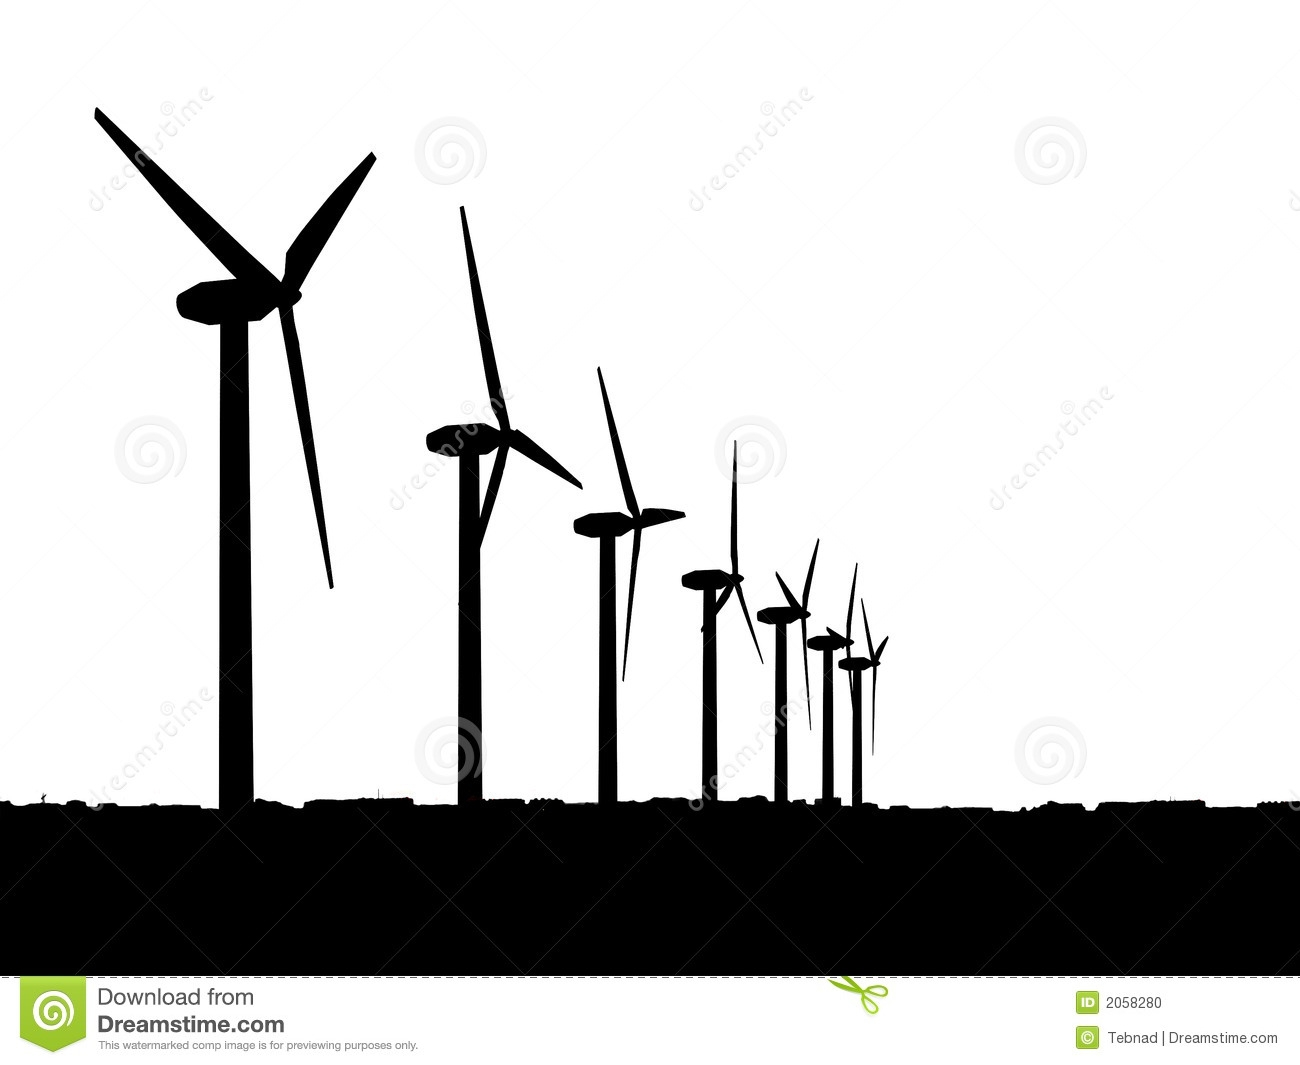 Turbine clipart black and white Background Clipart wind Wind No